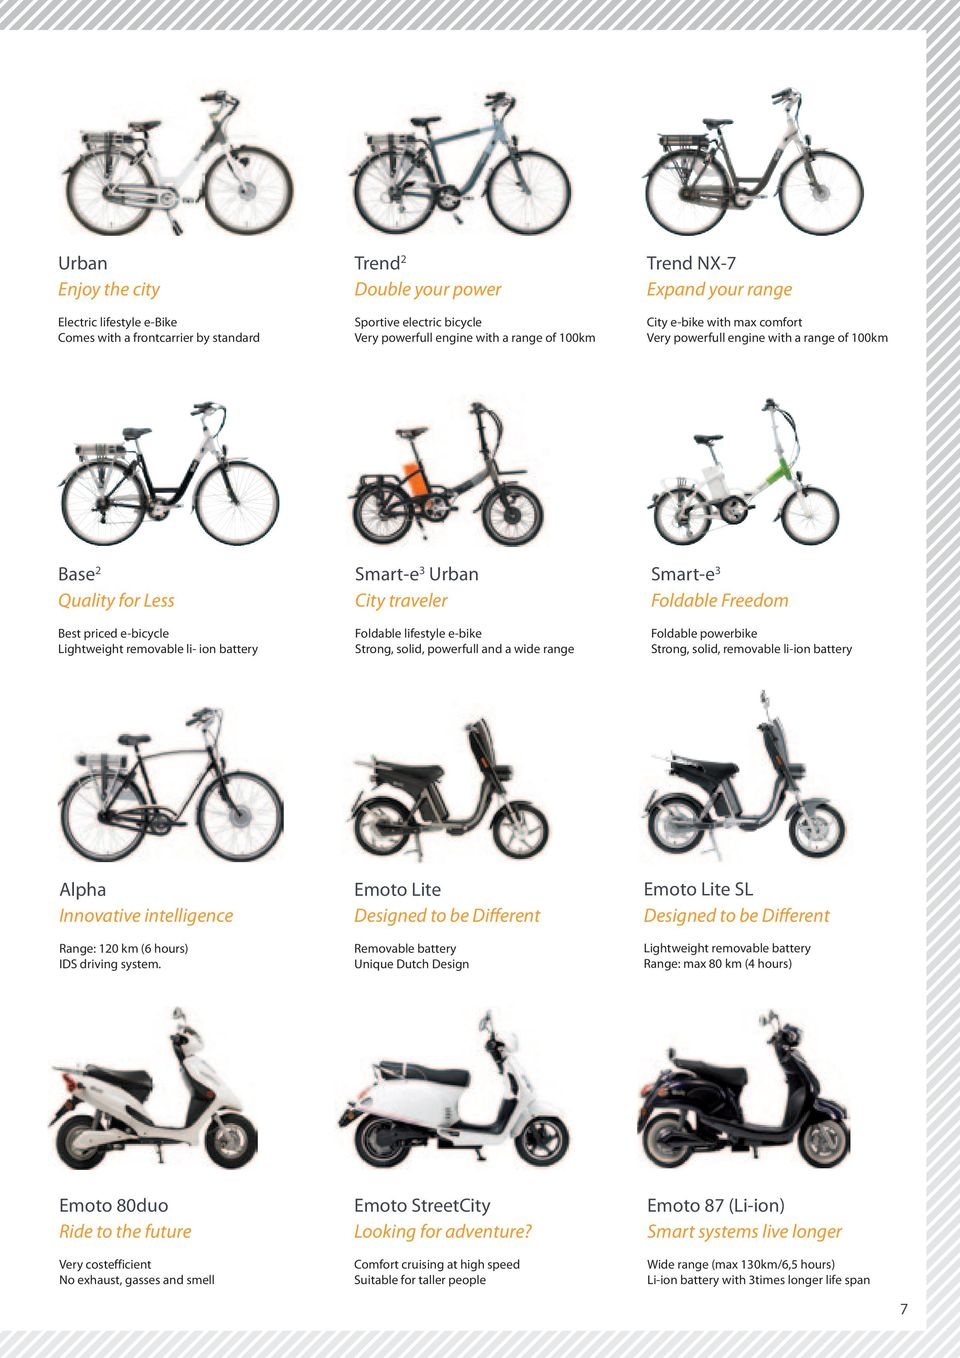 Foldable lifestyle e-bike Strong, solid, powerfull and a wide range Smart-e 3 Foldable Freedom Foldable powerbike Strong, solid, removable li-ion battery Alpha Innovative intelligence Range: 120 km